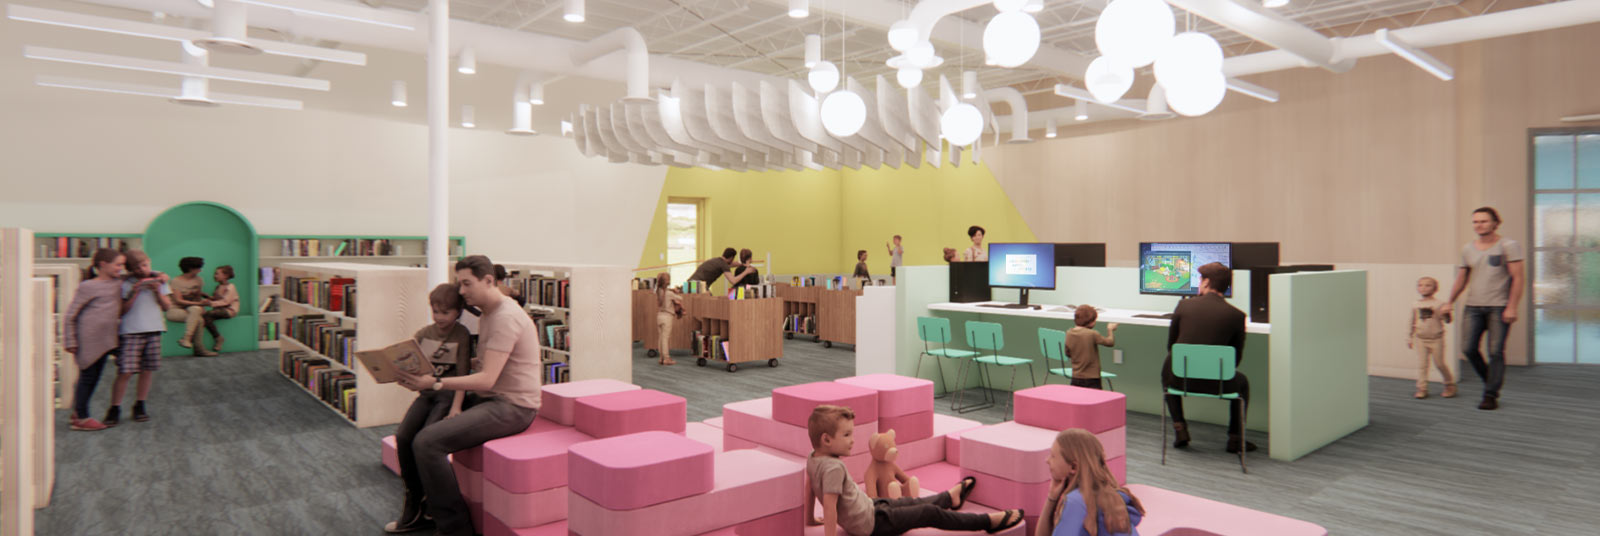 Rendering of the children's space in the new Deer Park Library.